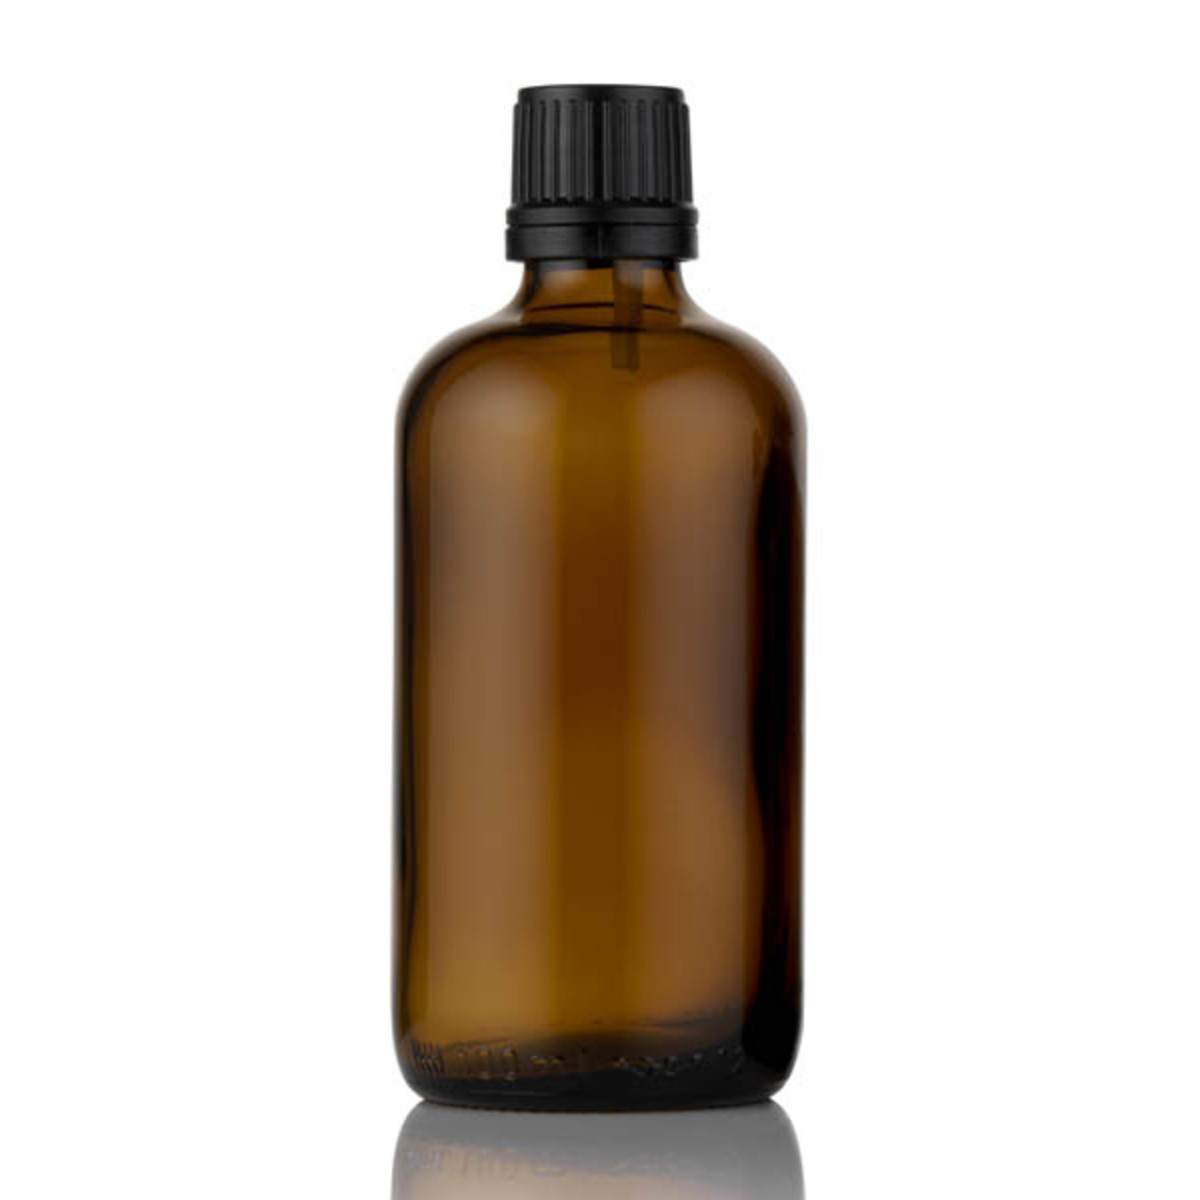 If you make your own natural medicines then you need a quality container for storing it. This is an Amber Bottle often used for storing Essential Oils